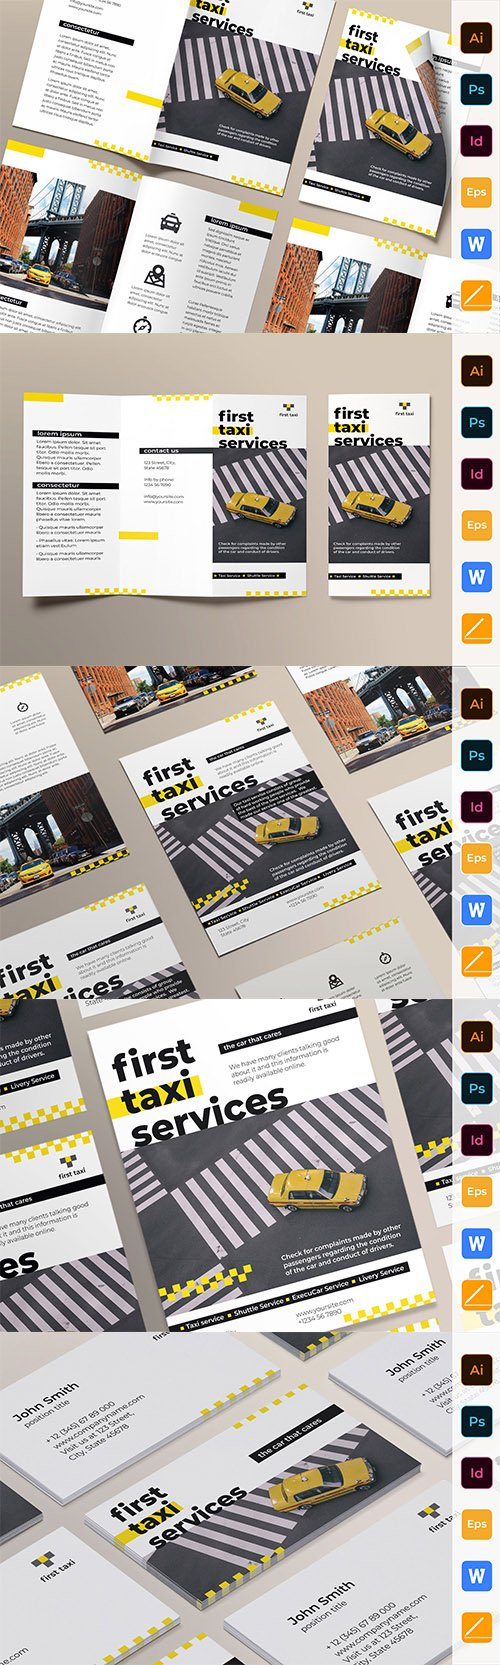 Taxi Services Brochure Bifold, Flyer, Business Card, Brochure Trifold and Poster Set